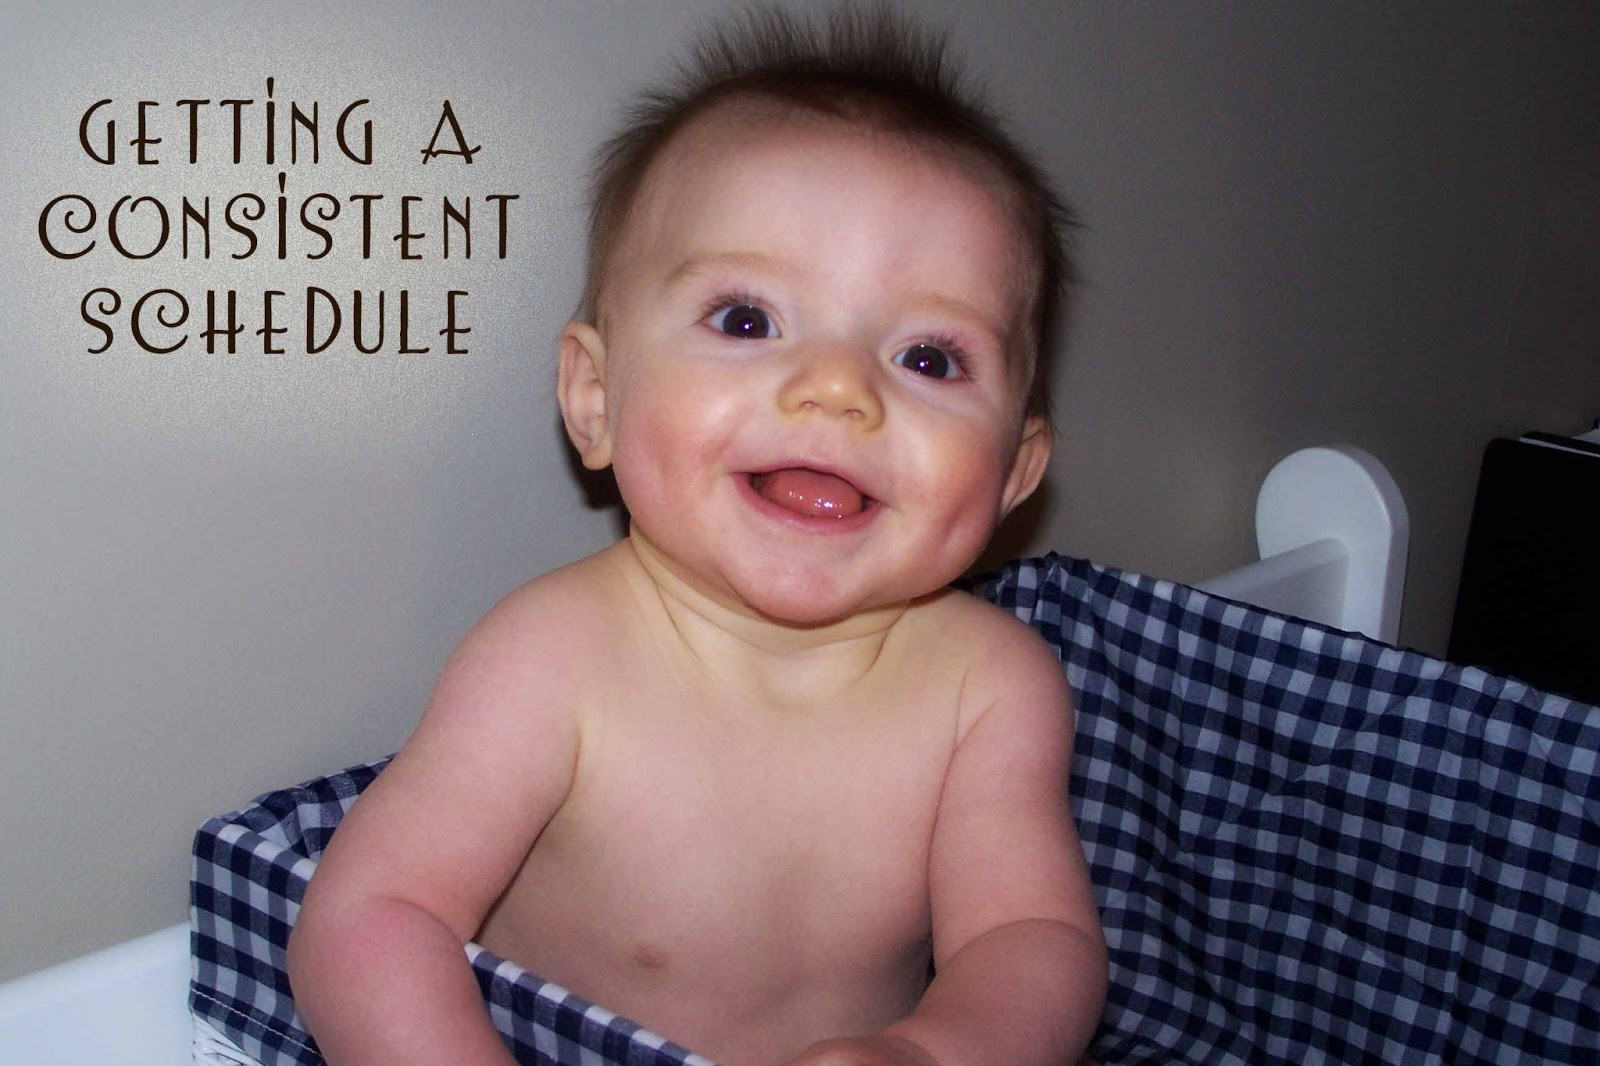 Getting a Consistent Schedule